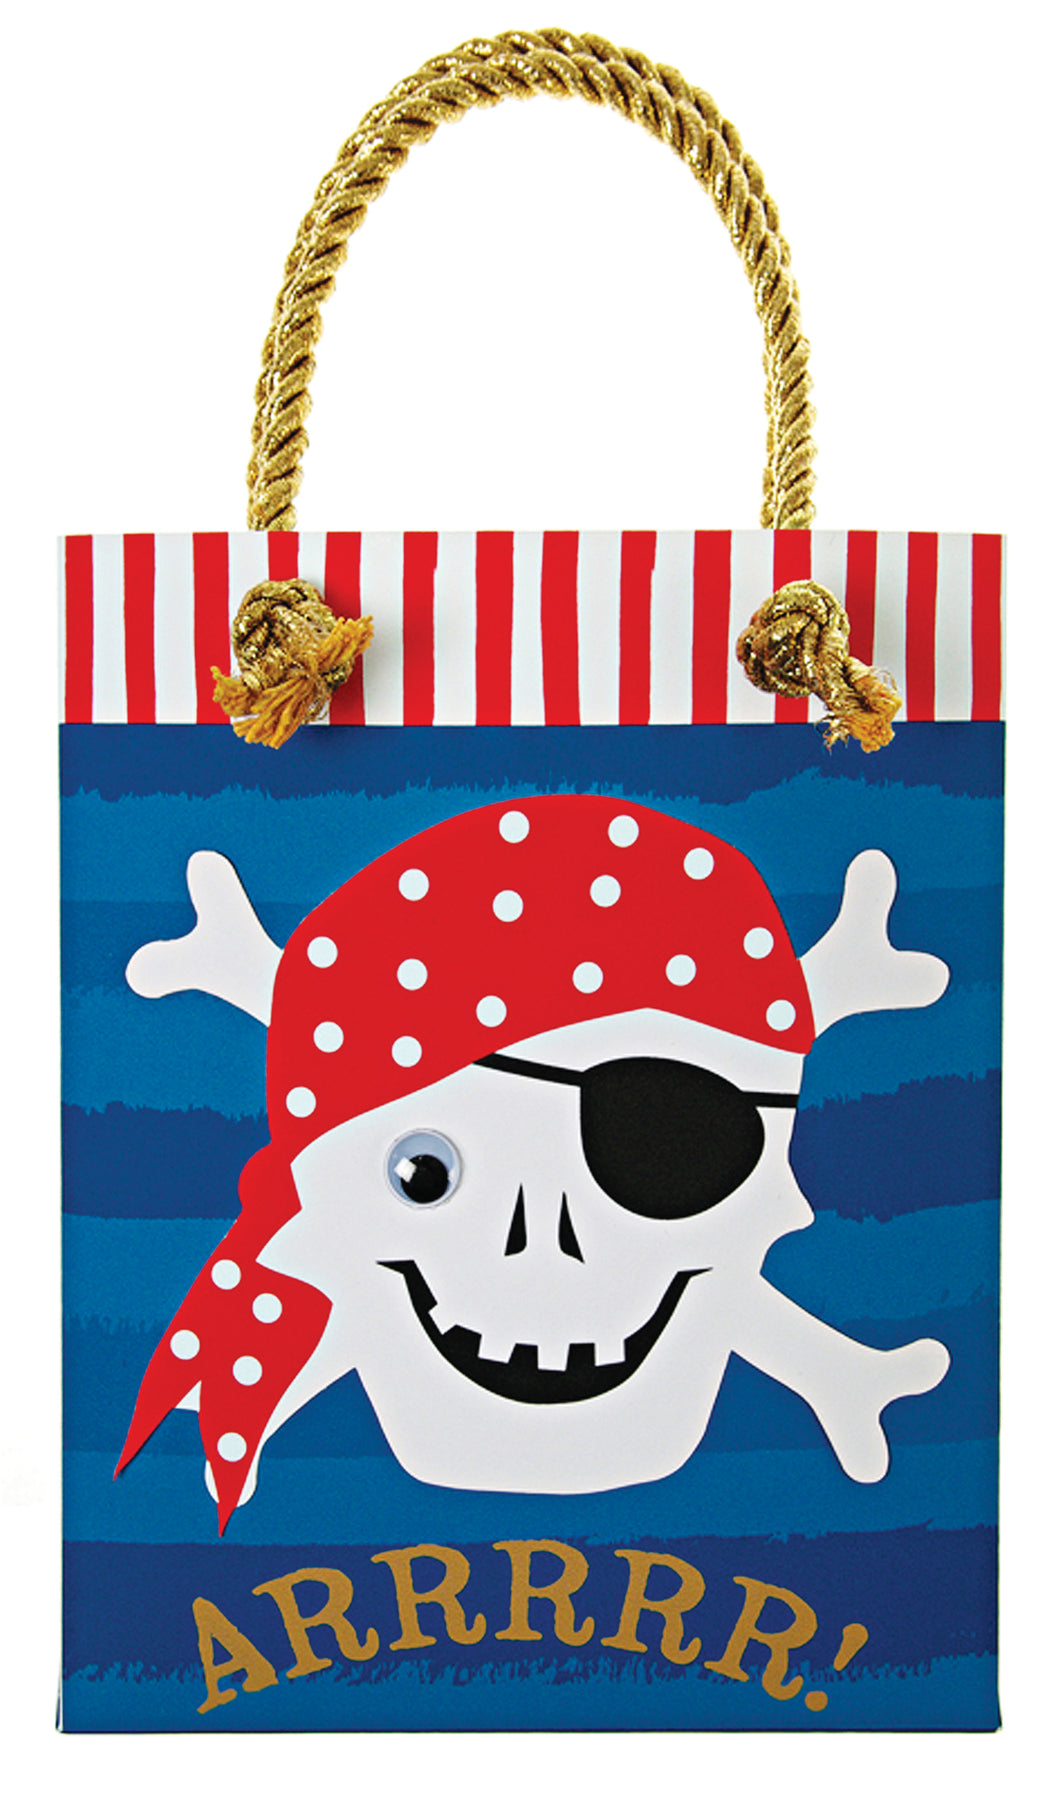 Sailing the seven seas can be a tough ask for a little party pirate so make sure they don't come to the end of their voyage without their loot! This party bag is decorated with a skull and crossbones motif with ocean patterns and stripes and is surrounded with a natural card border. It is embellished with a goggly bead eye and has gold rope handles. Size: 5 x 3 x 6 inches